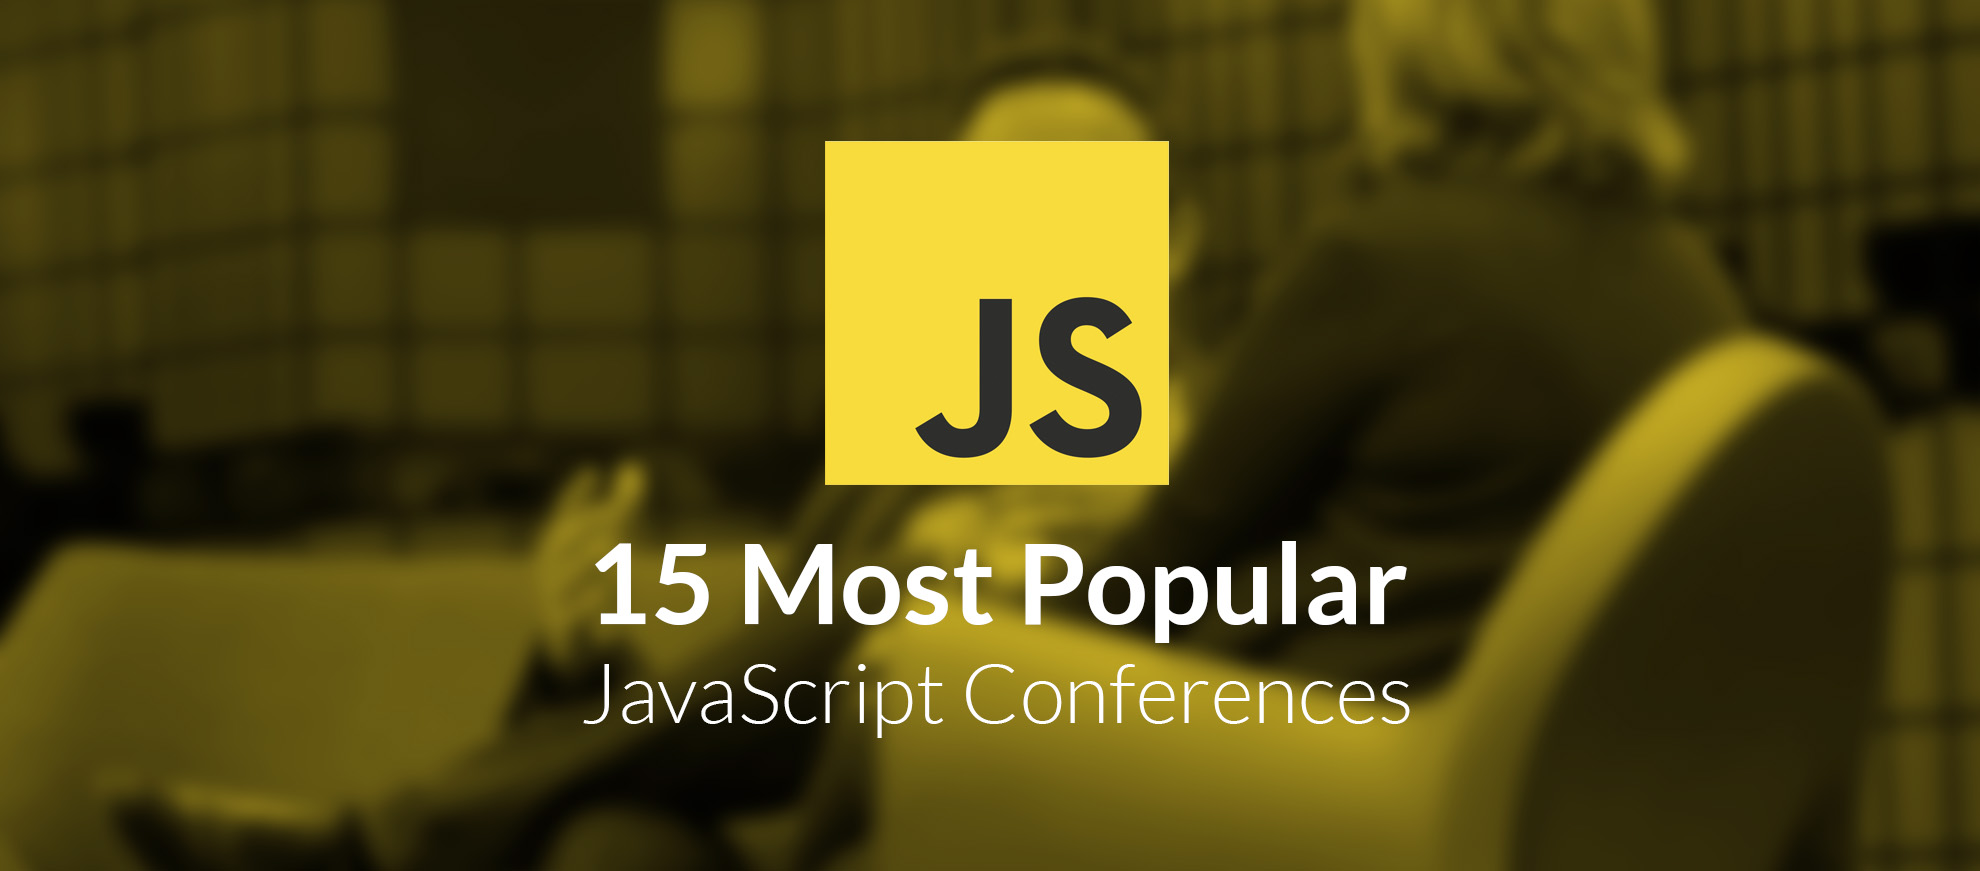 15 Most Popular JavaScript Conferences